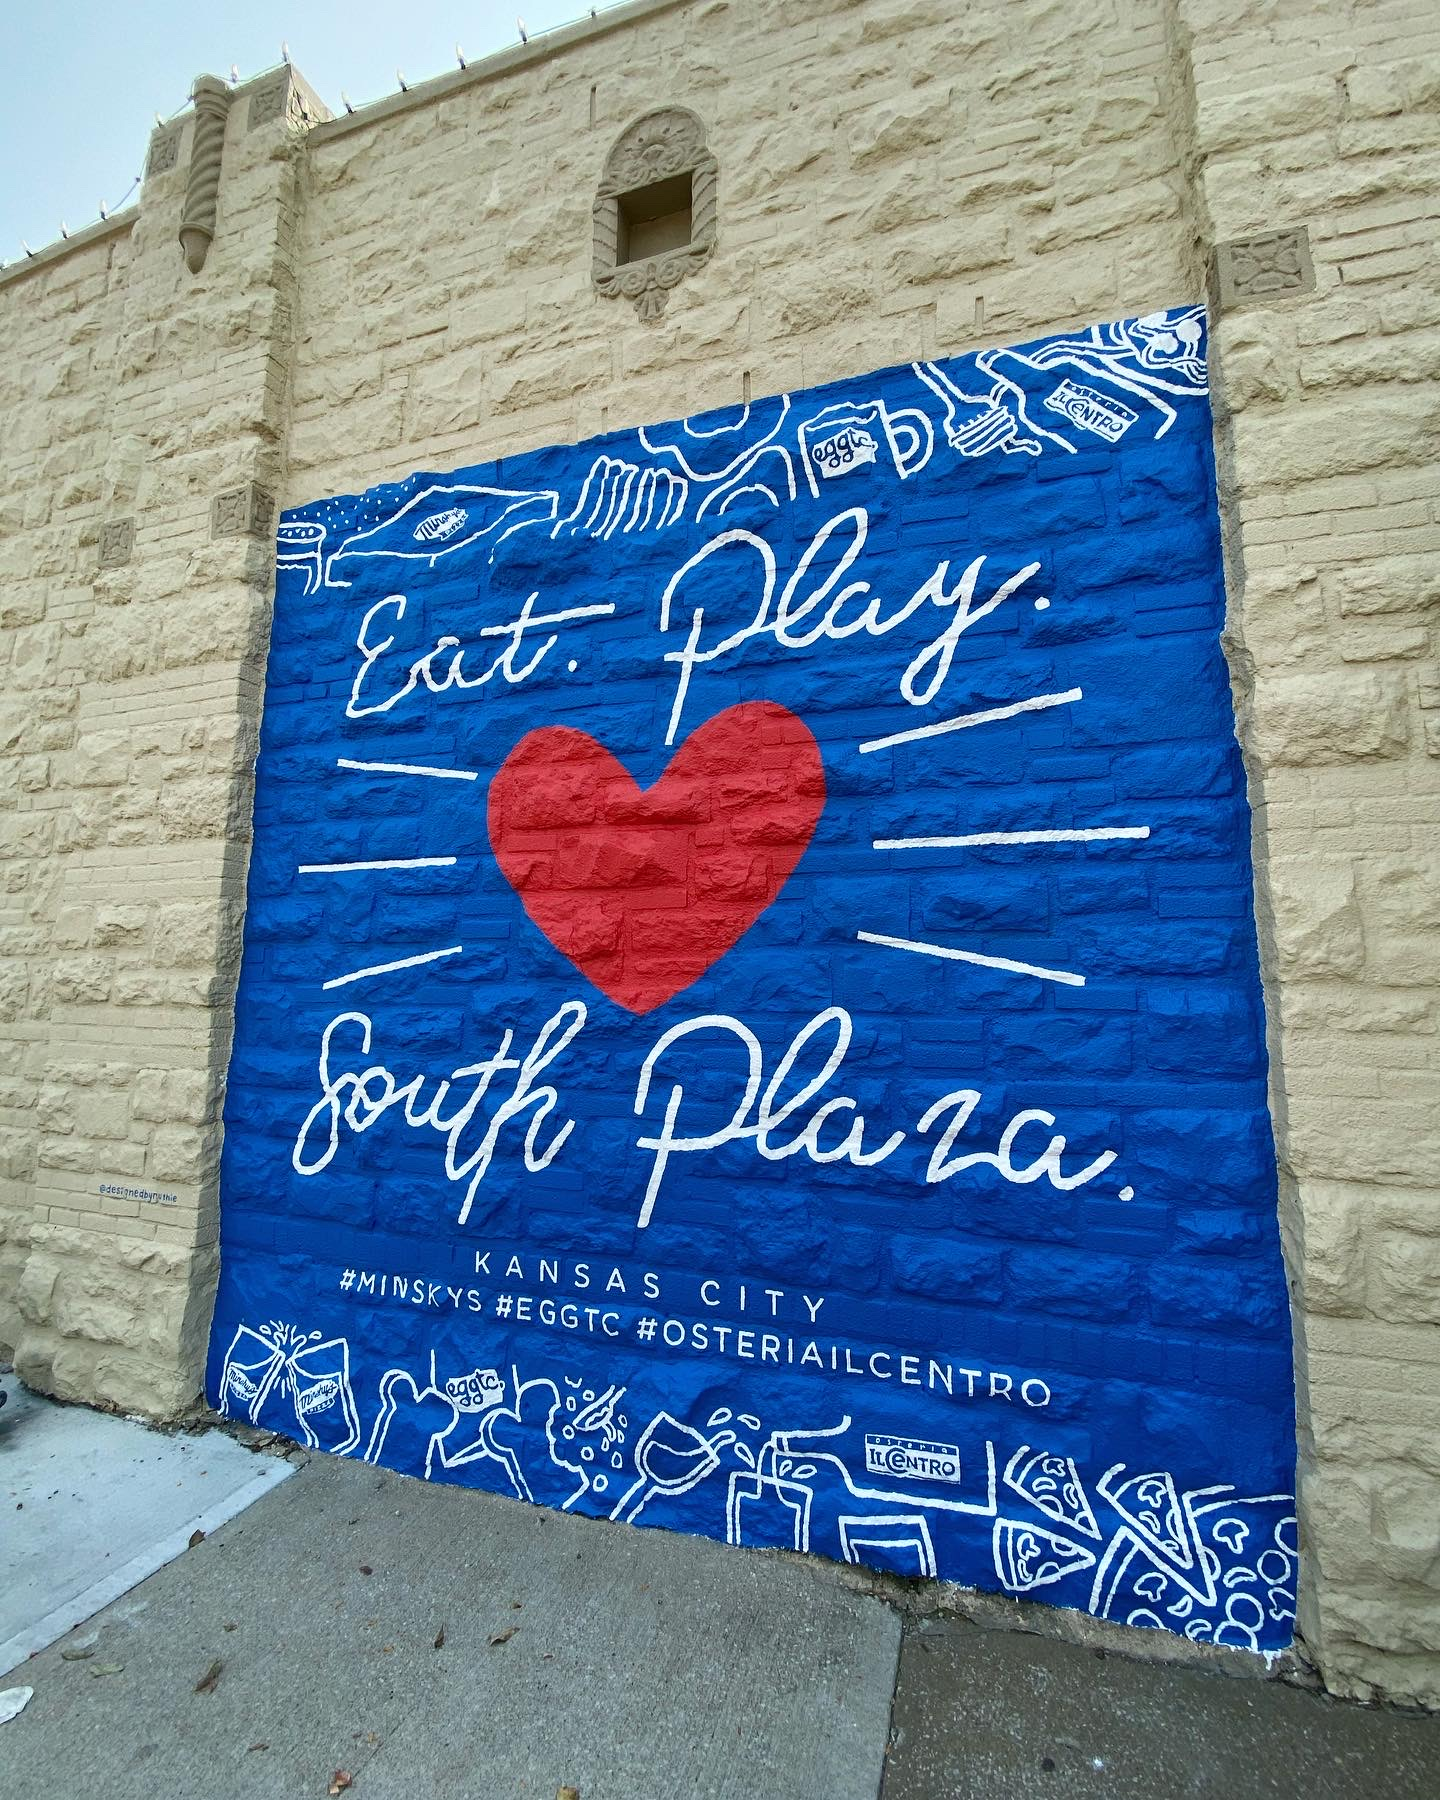 Eat. Play. (Love) South Plaza: New Mural from Local Artist!